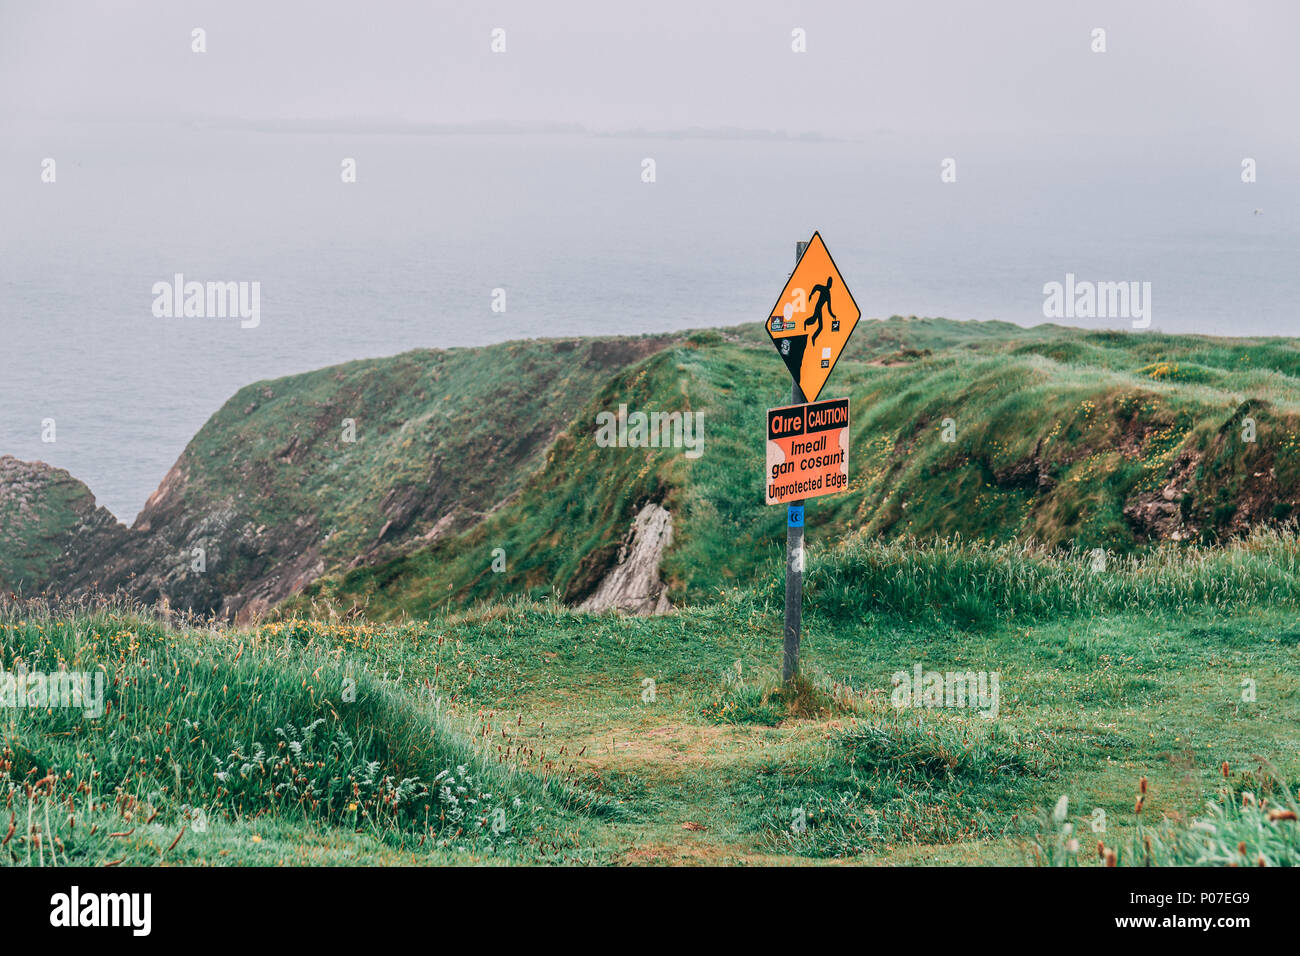 June 5th, 2018, Dunquin, Ireland - warning signs of slippery surface and unprotected edges at the iconic Dunquin harbour pier surroundings Stock Photo